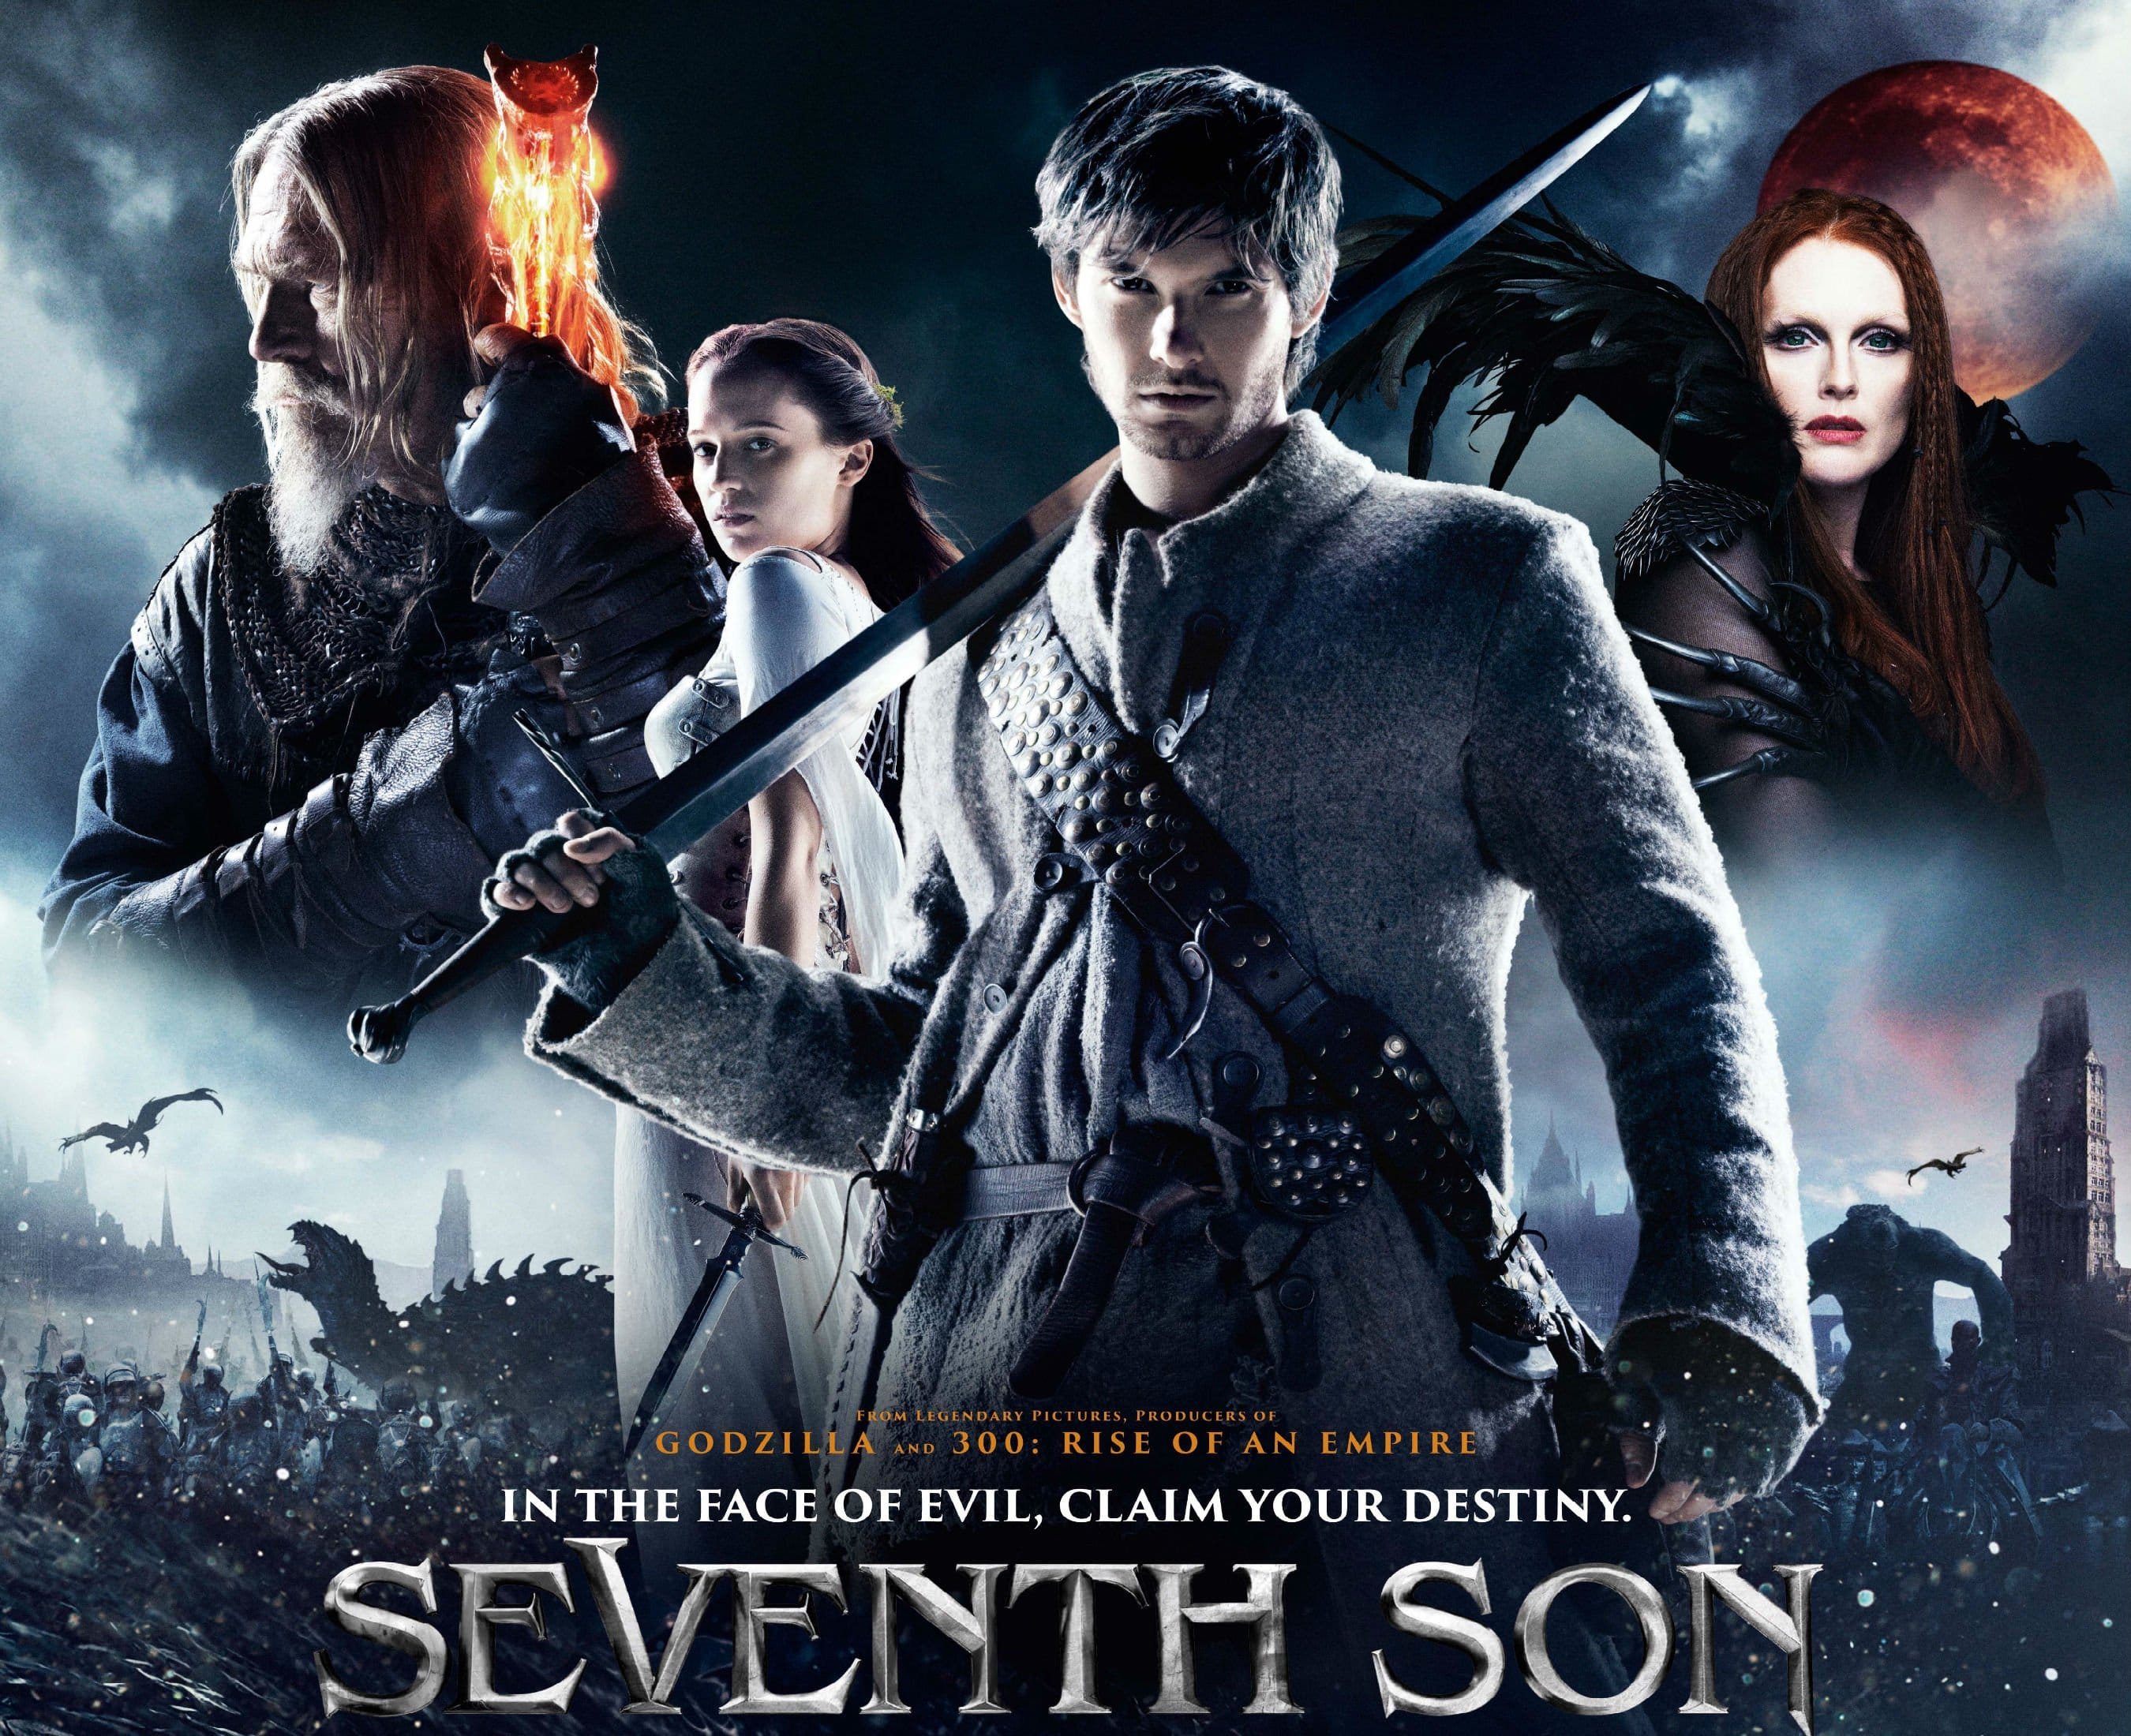 Seventh Son HQ wallpapers